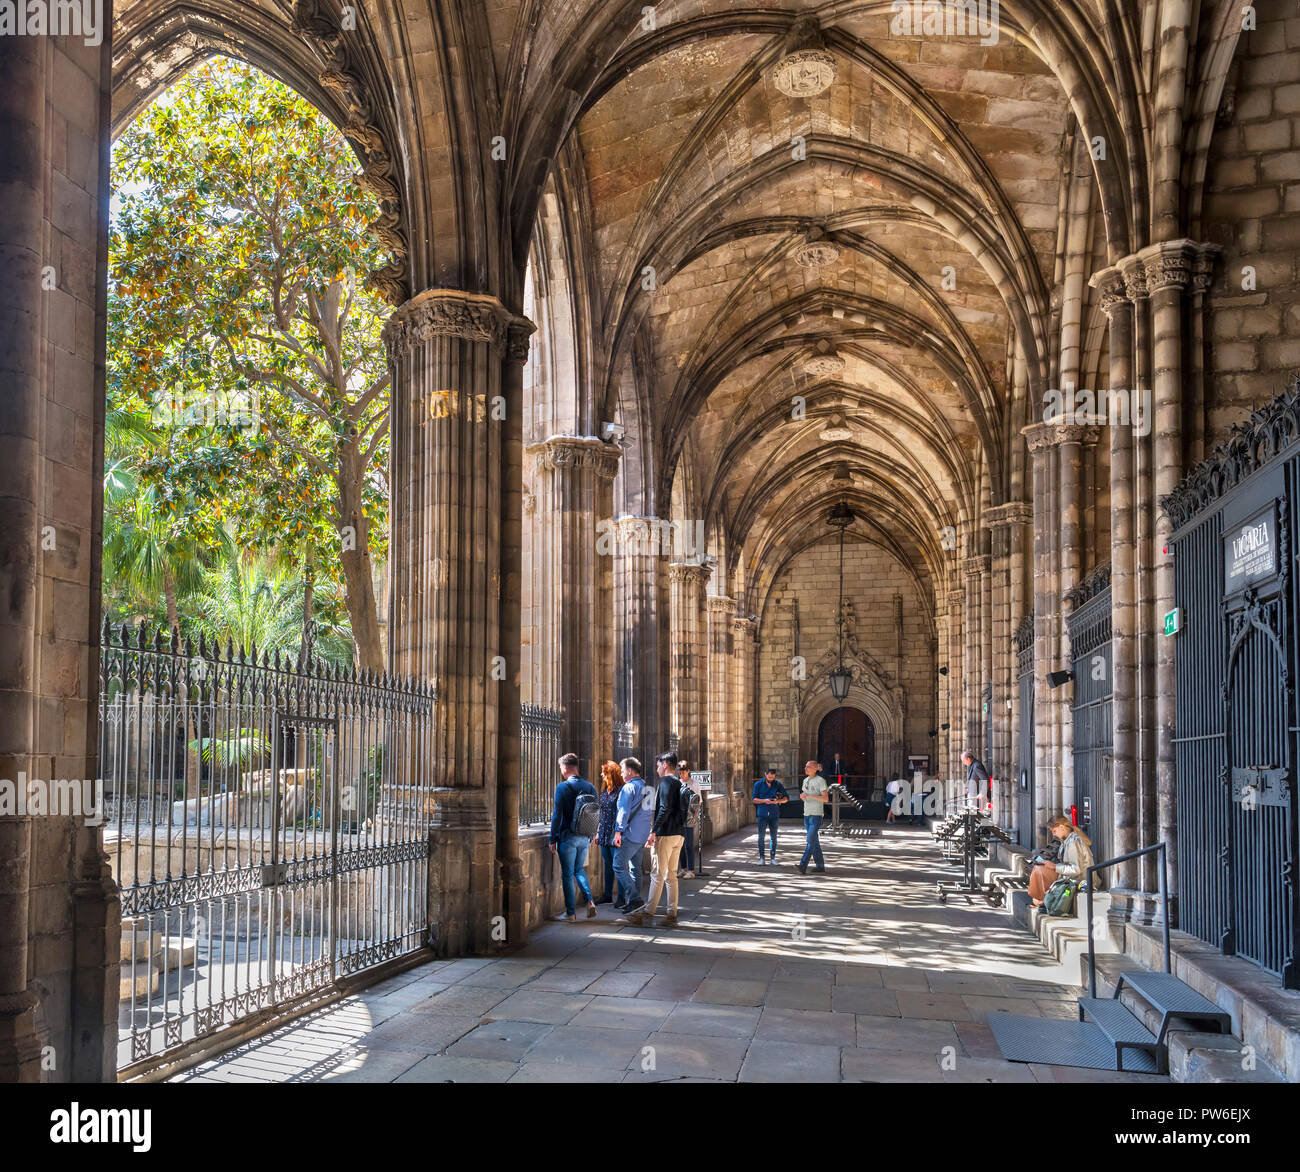 Barcelona Cathedral Cloisters In The Cathedral Of The Holy Cross And Saint Eulalia Barri Gotic Barcelona Spain Stock Photo Alamy